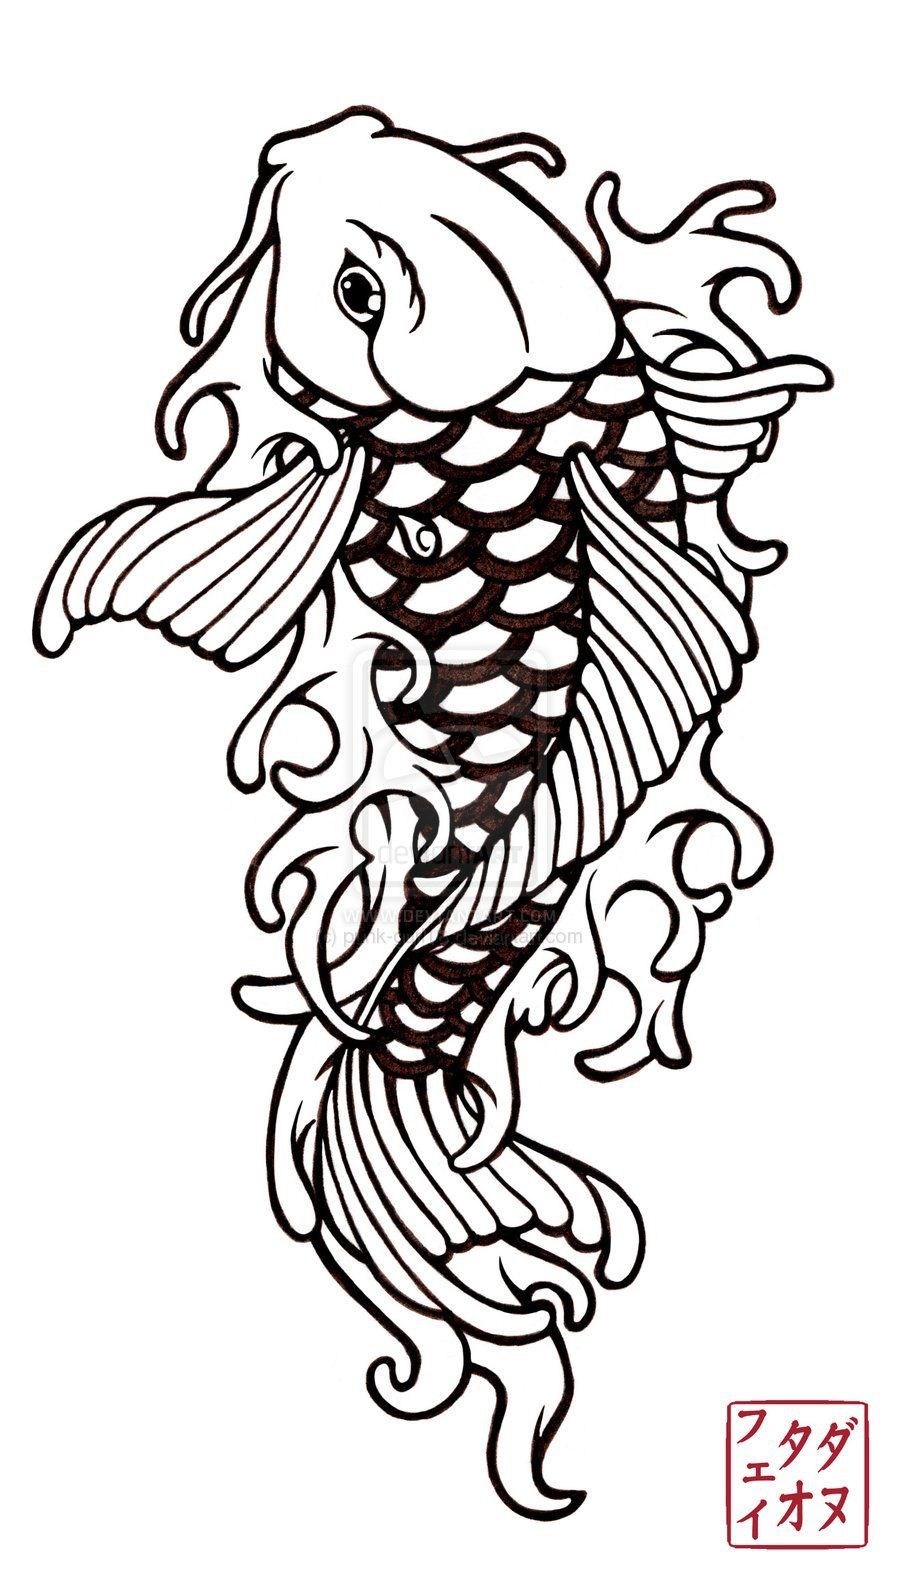 Pez Koi Para Colorear Tattoo Designs Tattoos Y Koi Tattoo Design